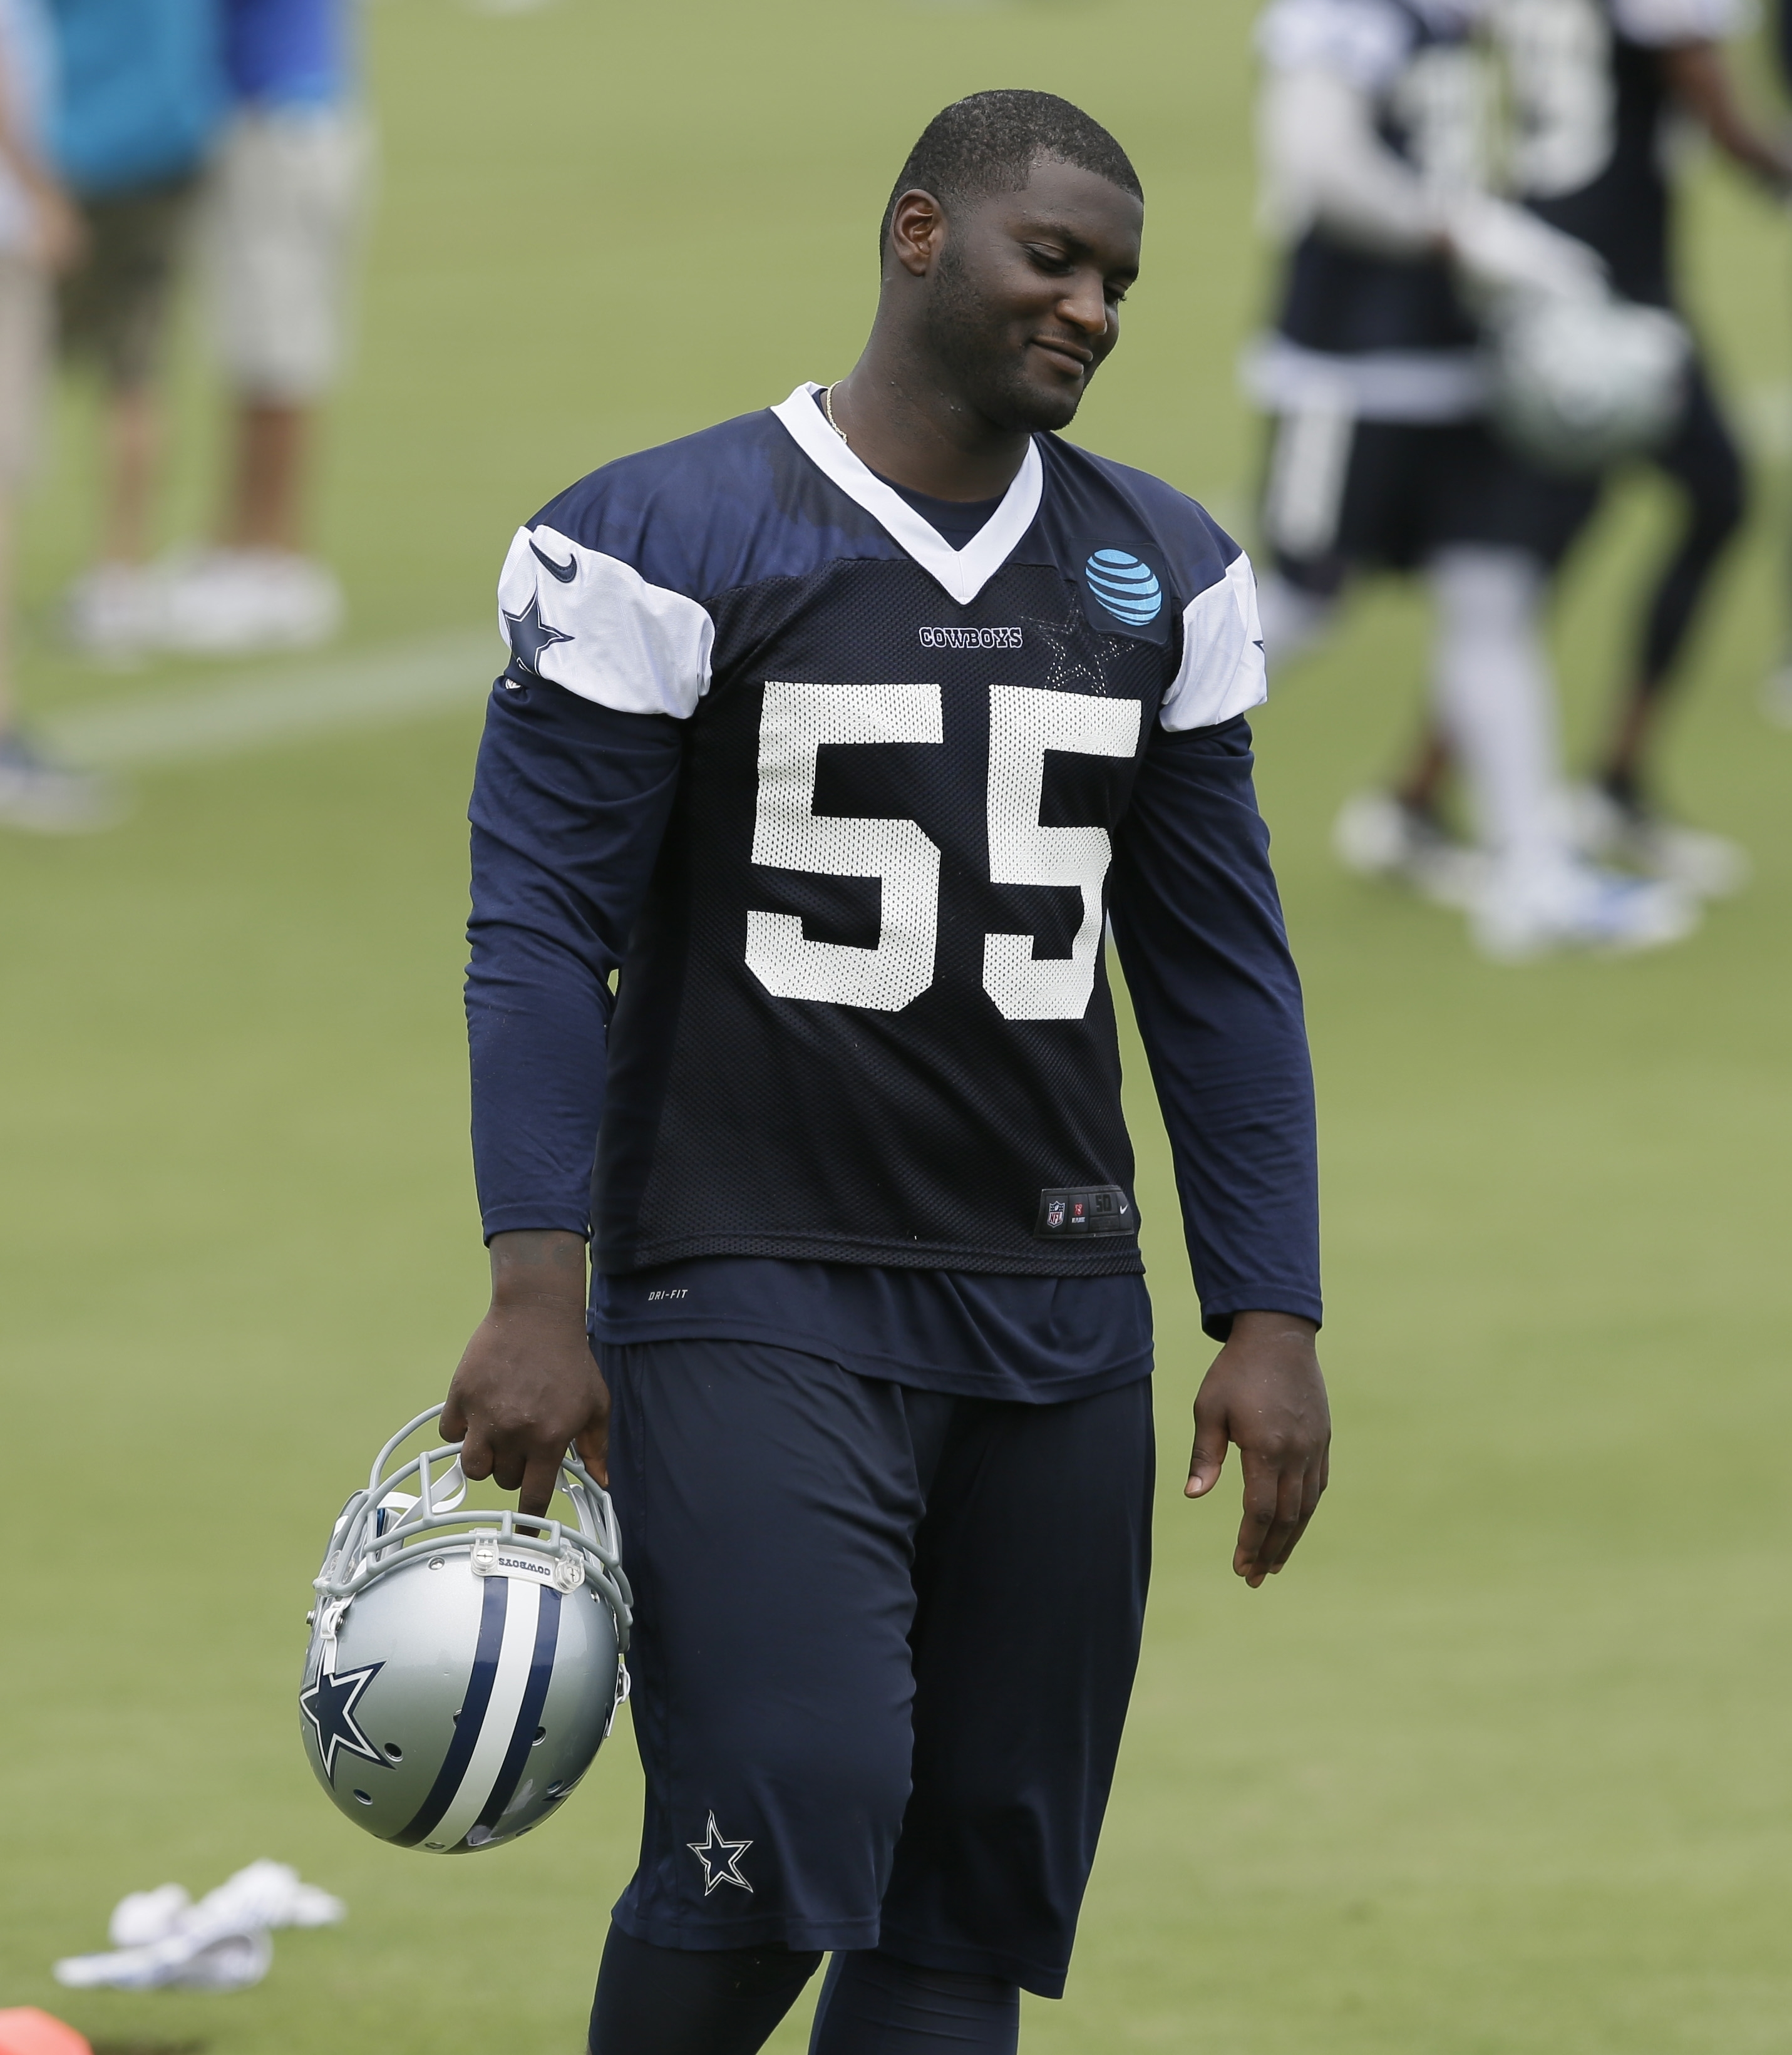 FILE - In this June 14, 2016, file photo, Dallas Cowboys linebacker Rolando McClain walks the field during the NFL football team's minicamp at Valley Ranch in Irving, Texas. McClain will miss the first 10 games for on a substance-abuse suspension, and mig